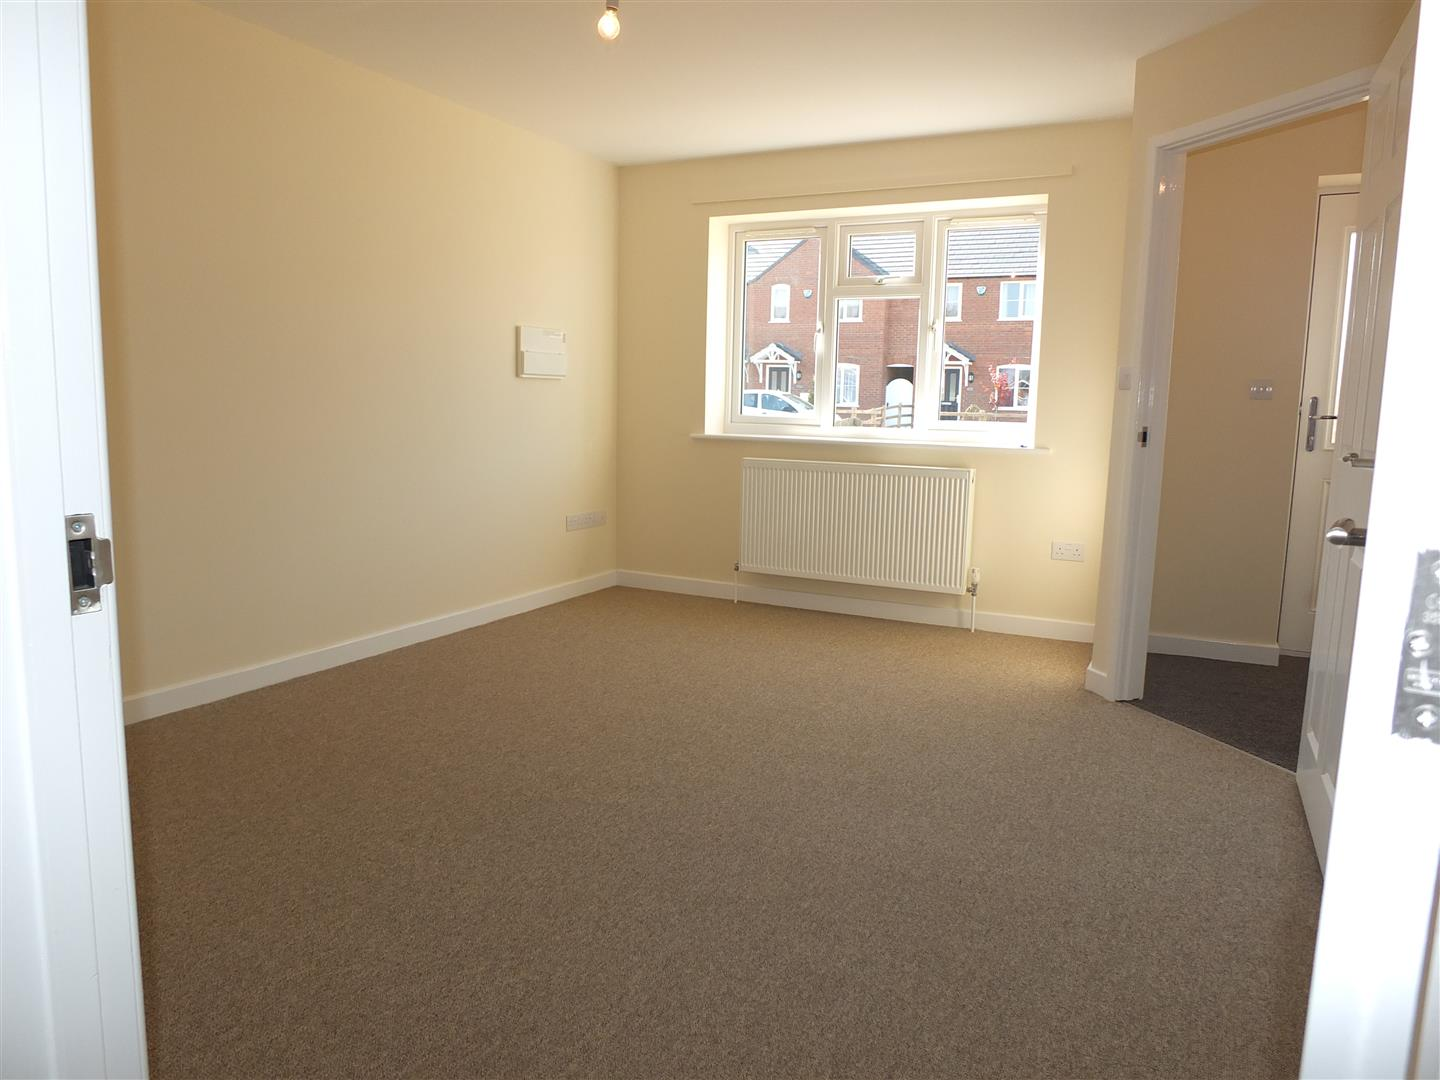 2 bed house to rent in Long Sutton, PE12 9LE  - Property Image 5